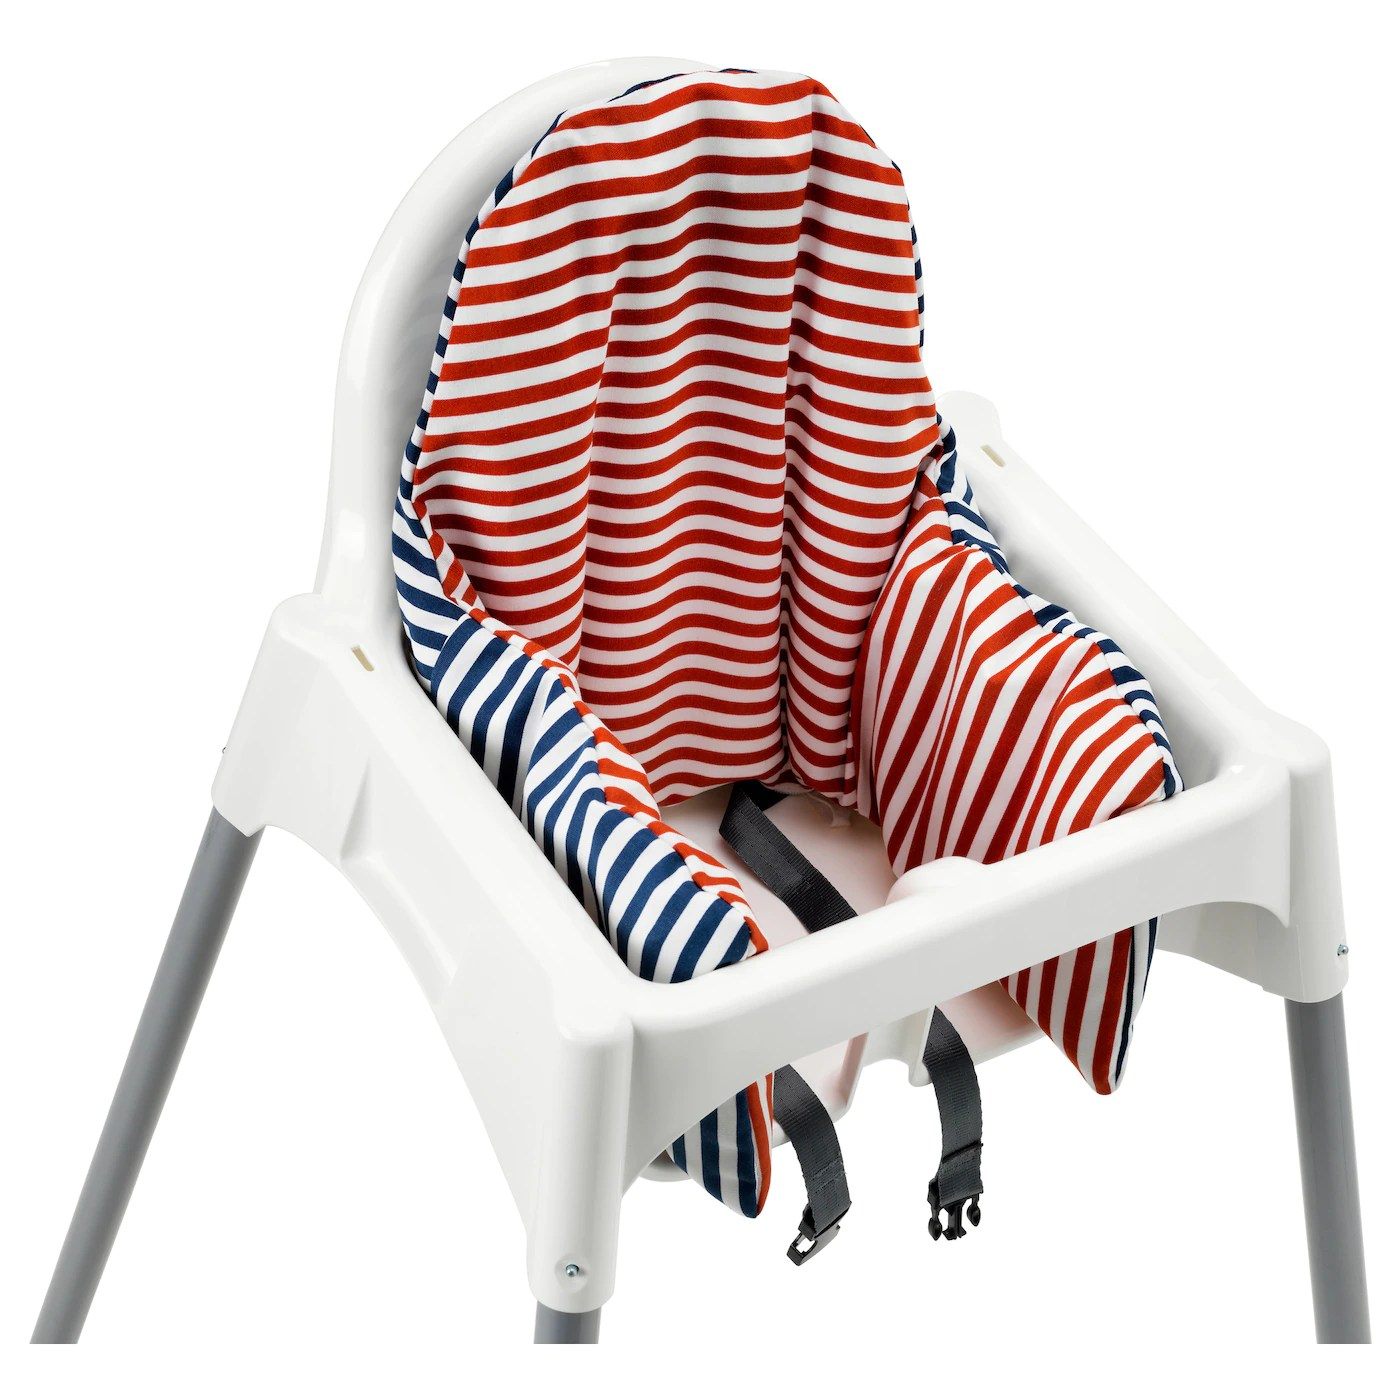 ikea high chair repair lounge pyttig supporting cushion and cover red blue